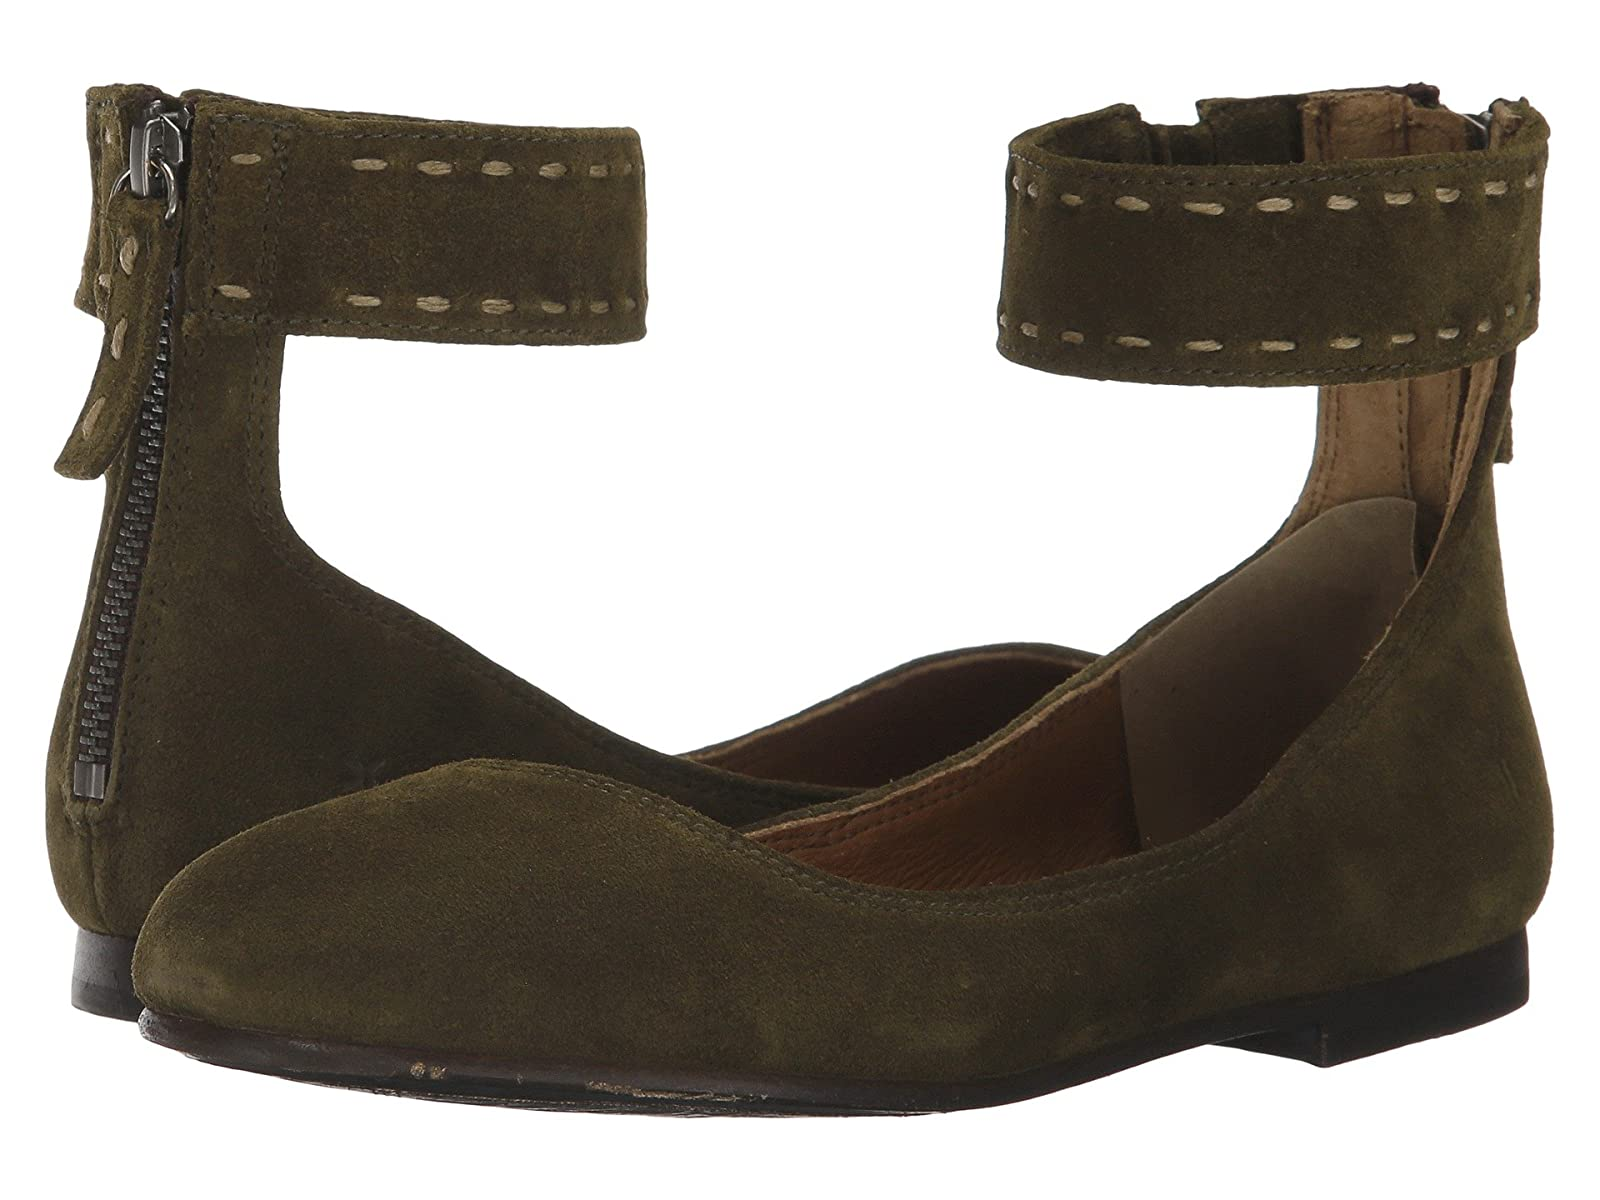 Frye Carson Ankle BalletCheap and distinctive eye-catching shoes